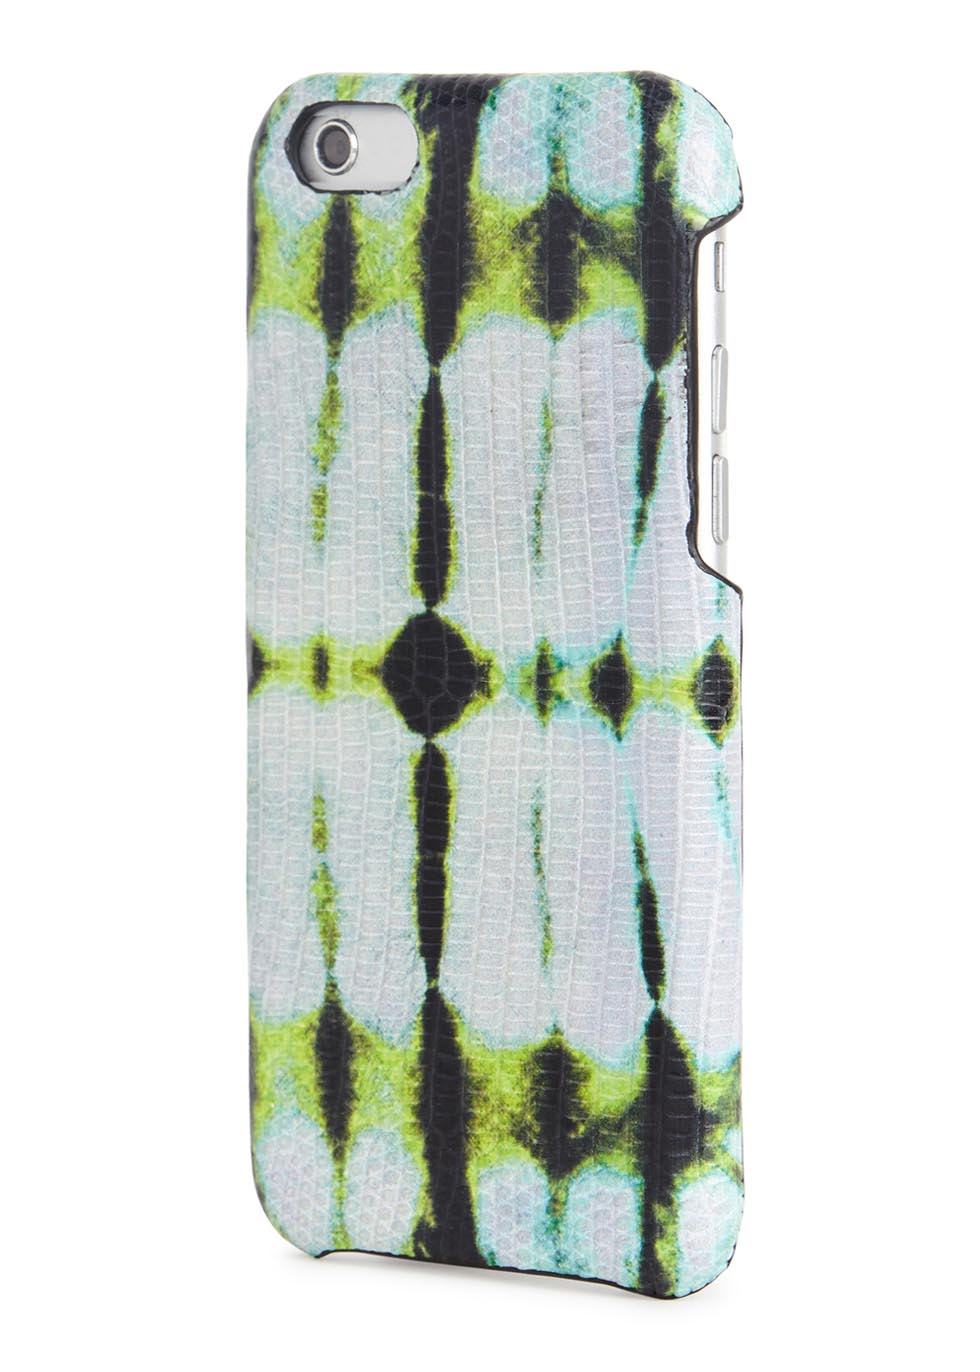 Green watersnake iPhone 6/6S case - The Case Factory